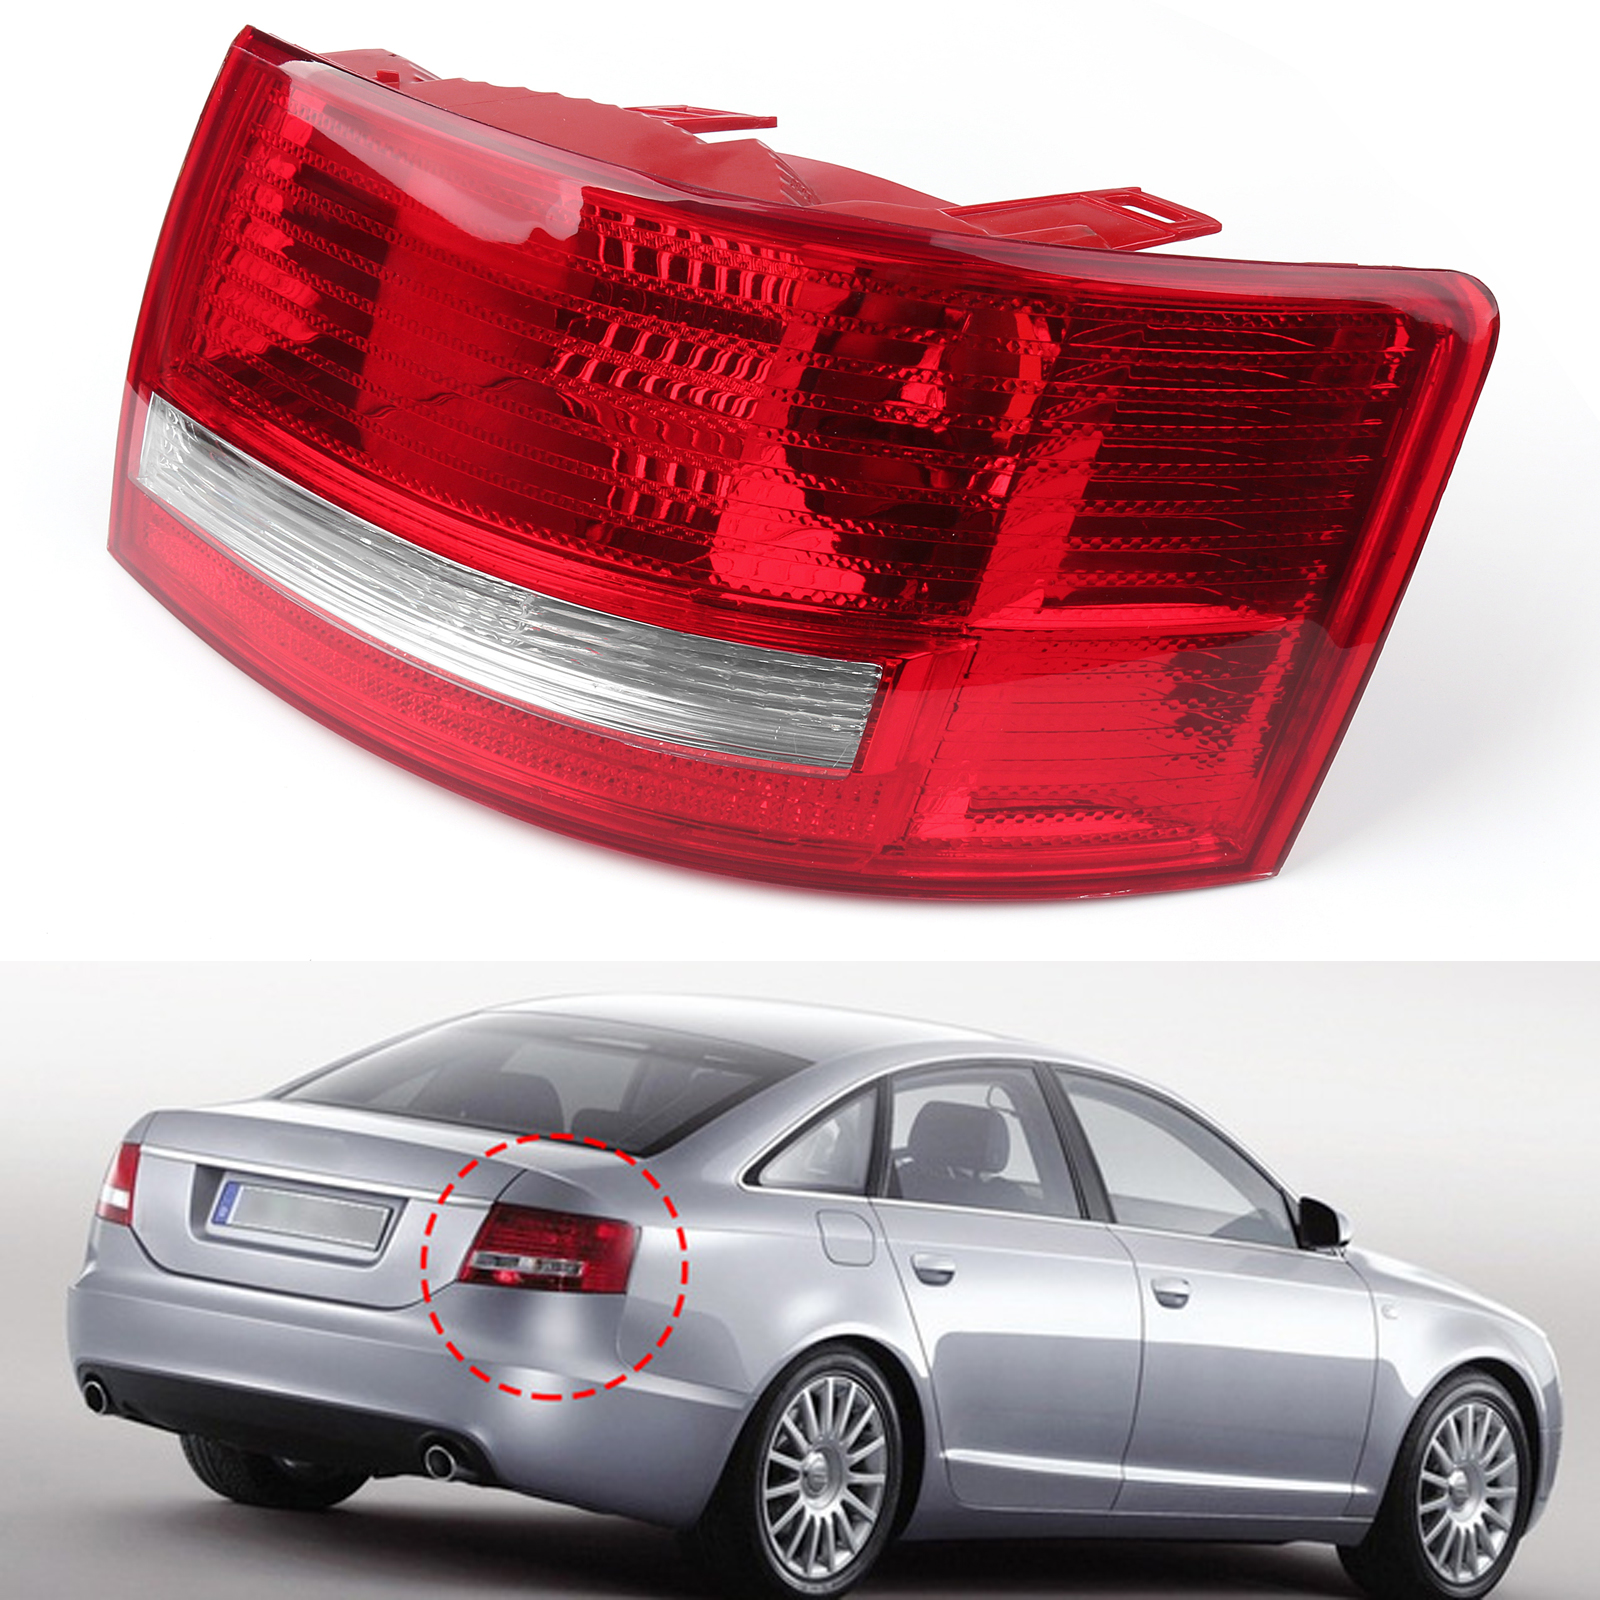 hight resolution of details about right passenger s side tail light cover for 05 08 audi a6 quattro s6 4f5945096m